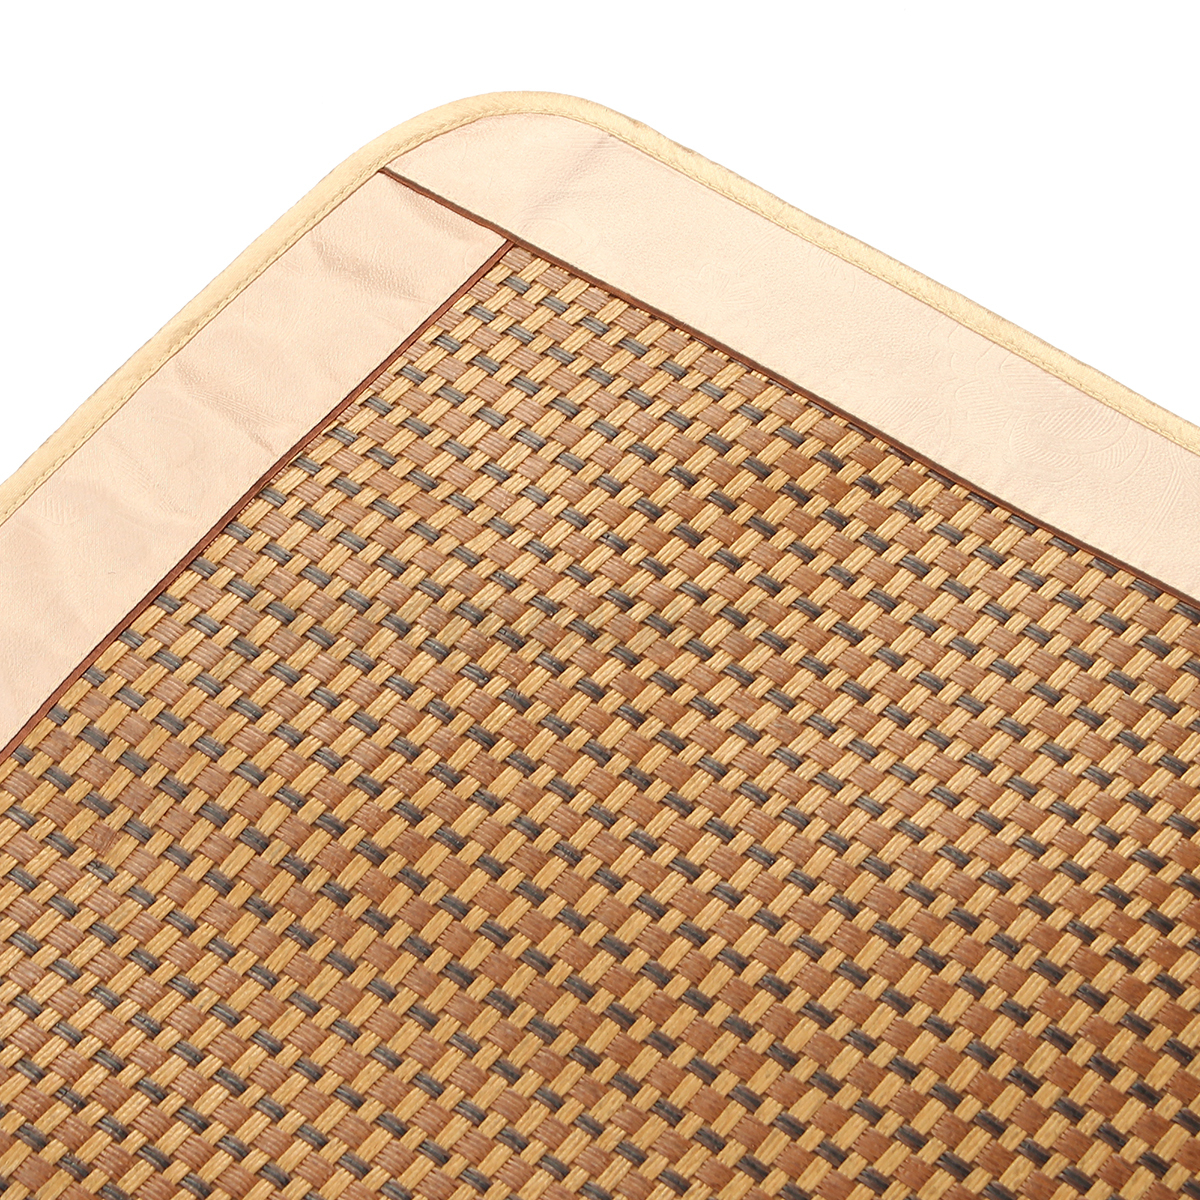 Sofa Pad Rattan Mat Couch Silp Cover Protector Stain-resistant